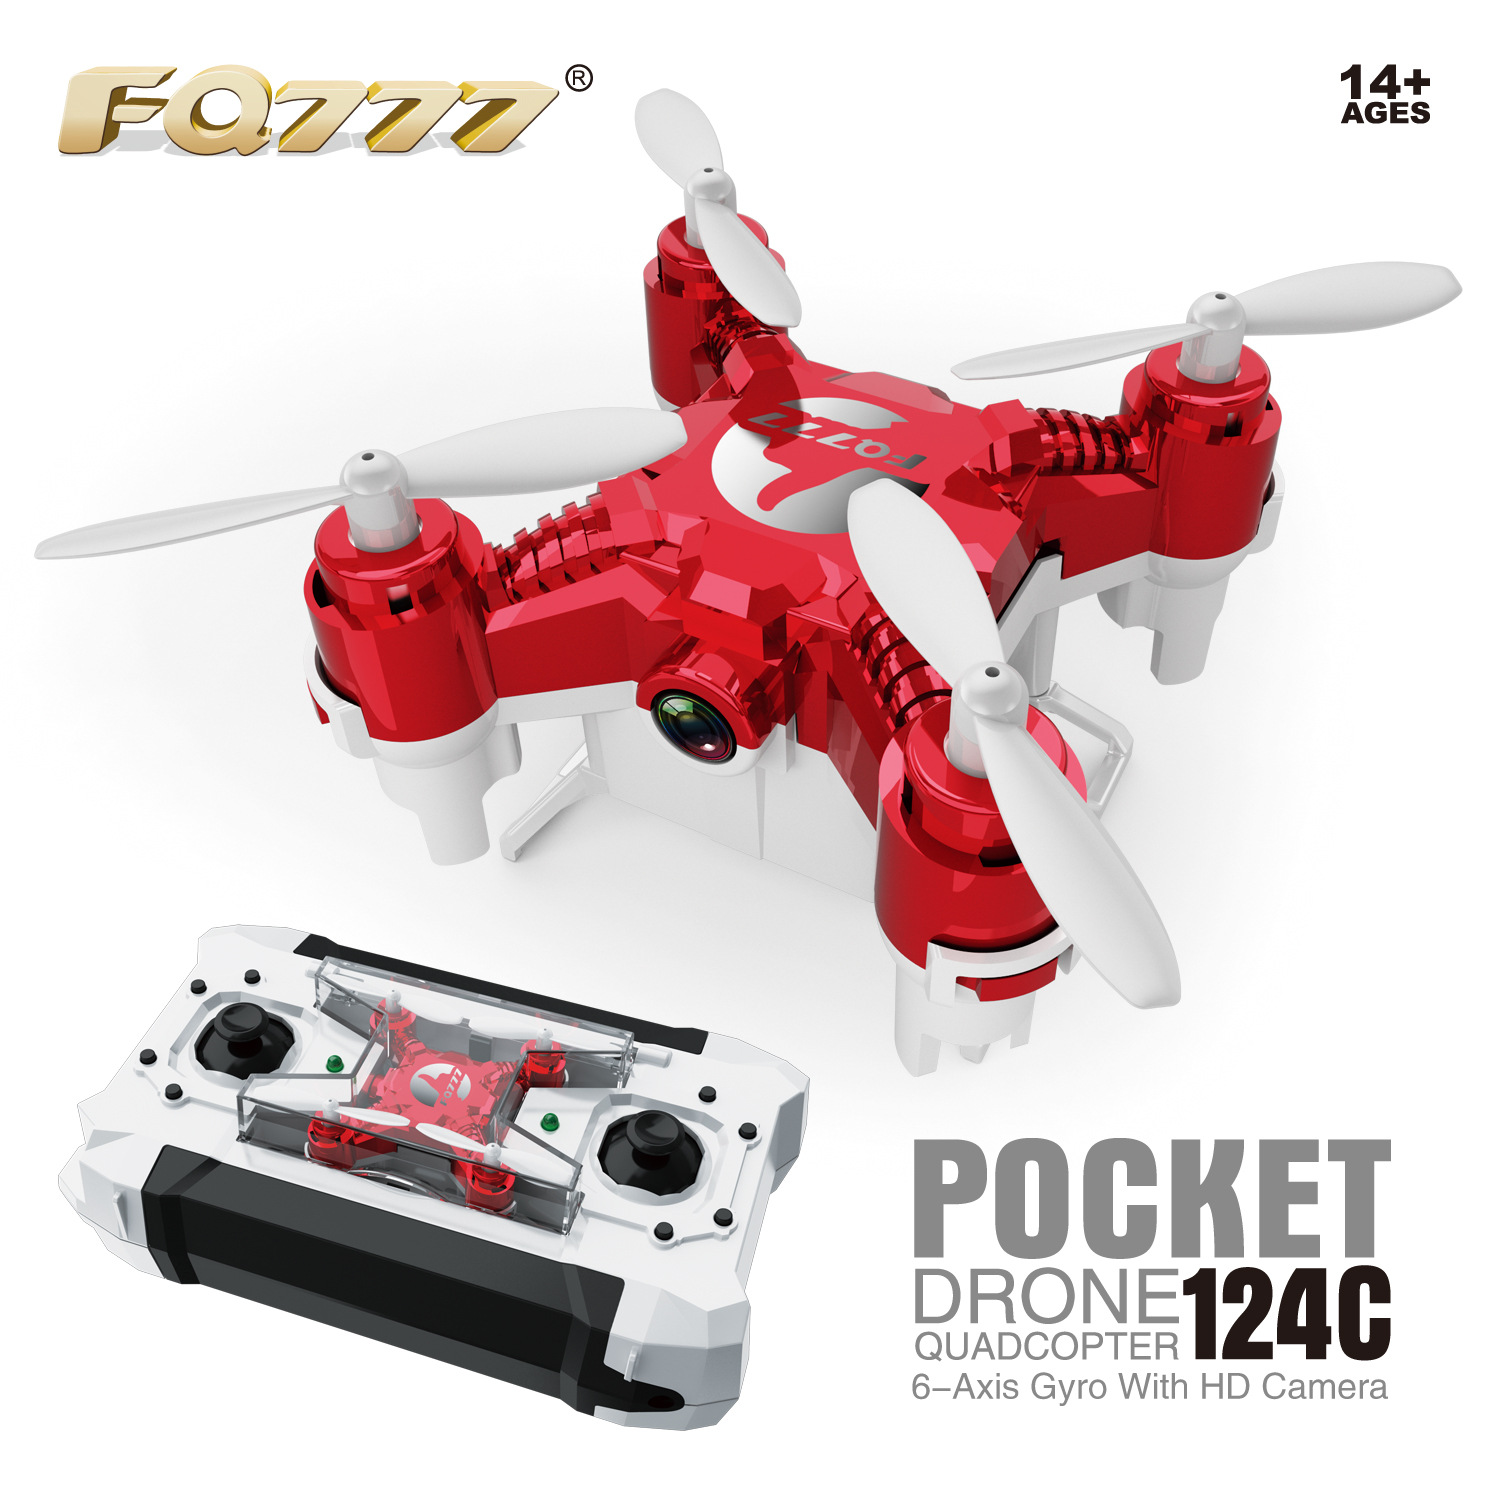 Fq777-124c Unmanned Aerial Vehicle Mini Portable Aerial Photography Pocket Aircraft Telecontrolled Toy Aircraft